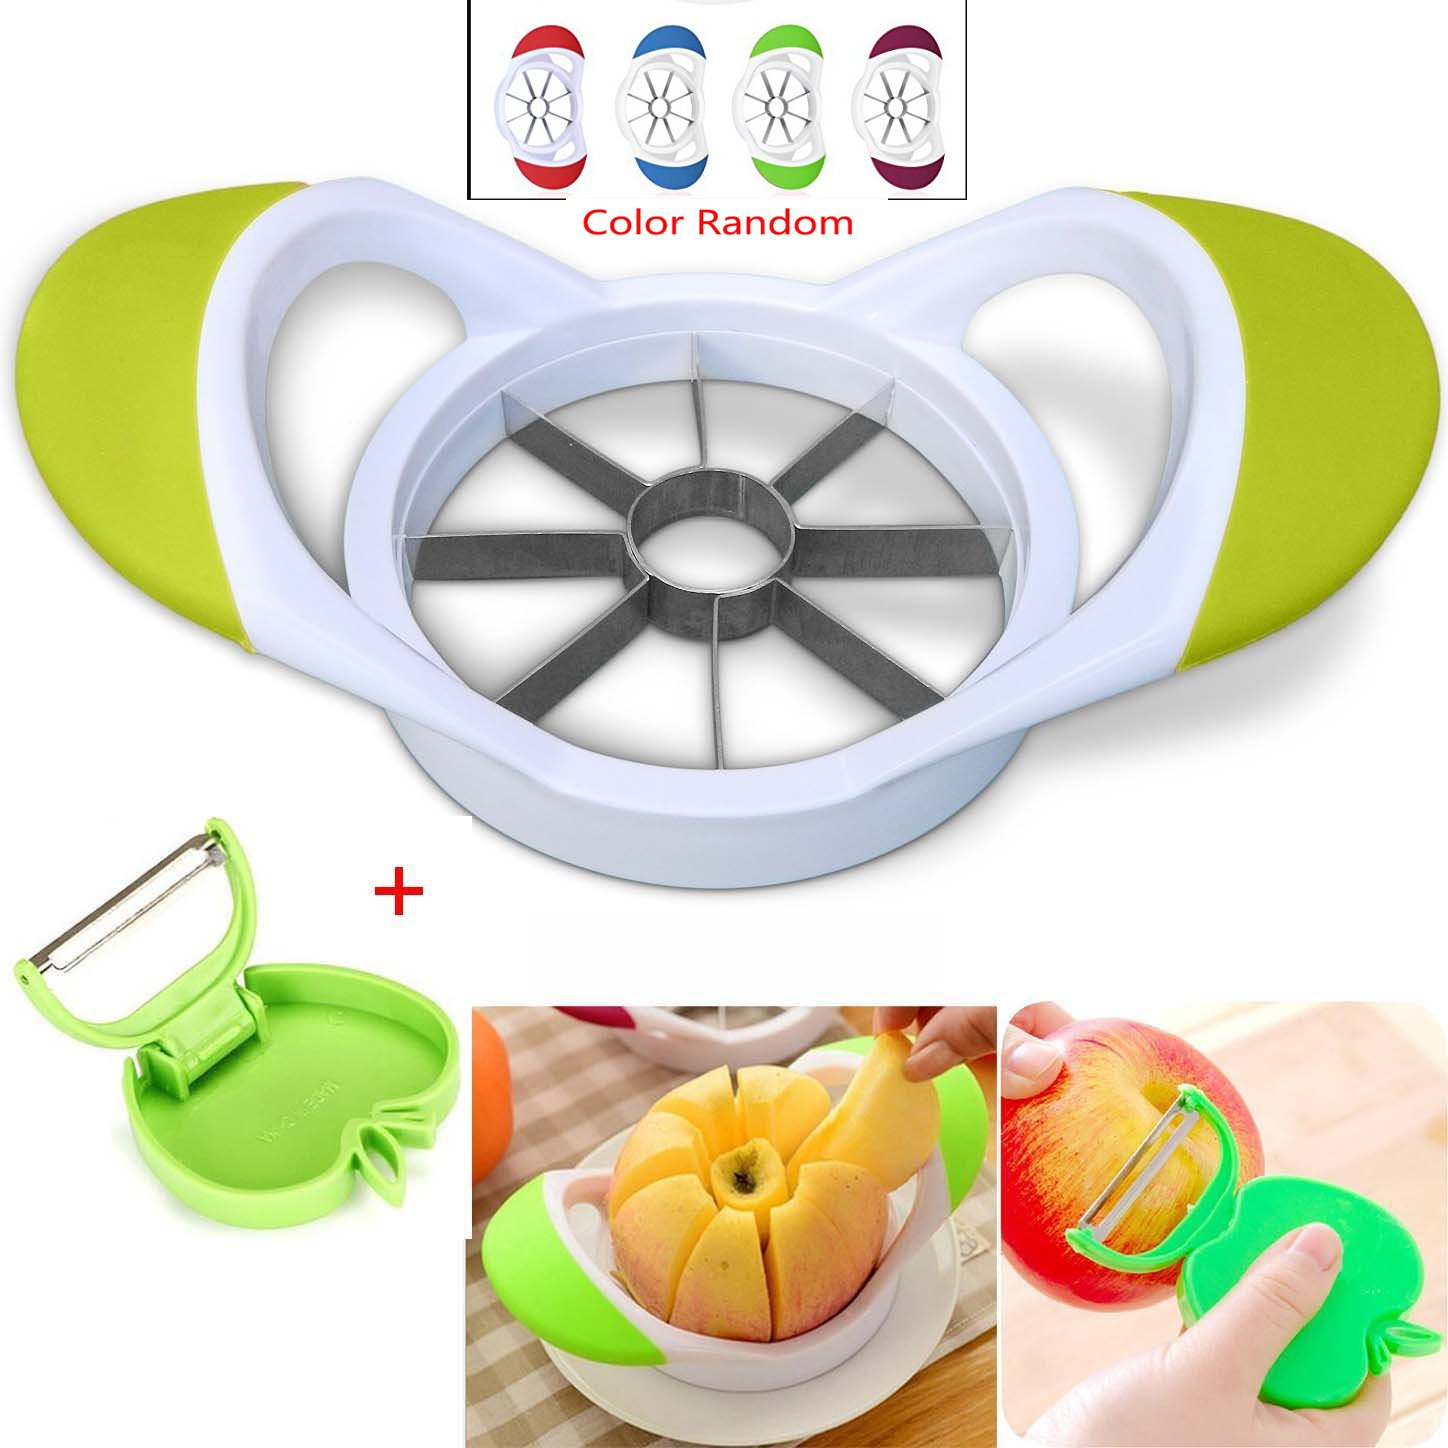 8-Blades Apple Slicer Corer - Ultra-Sharp Stainless Steel Apple Blades with Folding Peeler, White, Arriving Within 3-5 Days SUN RUN